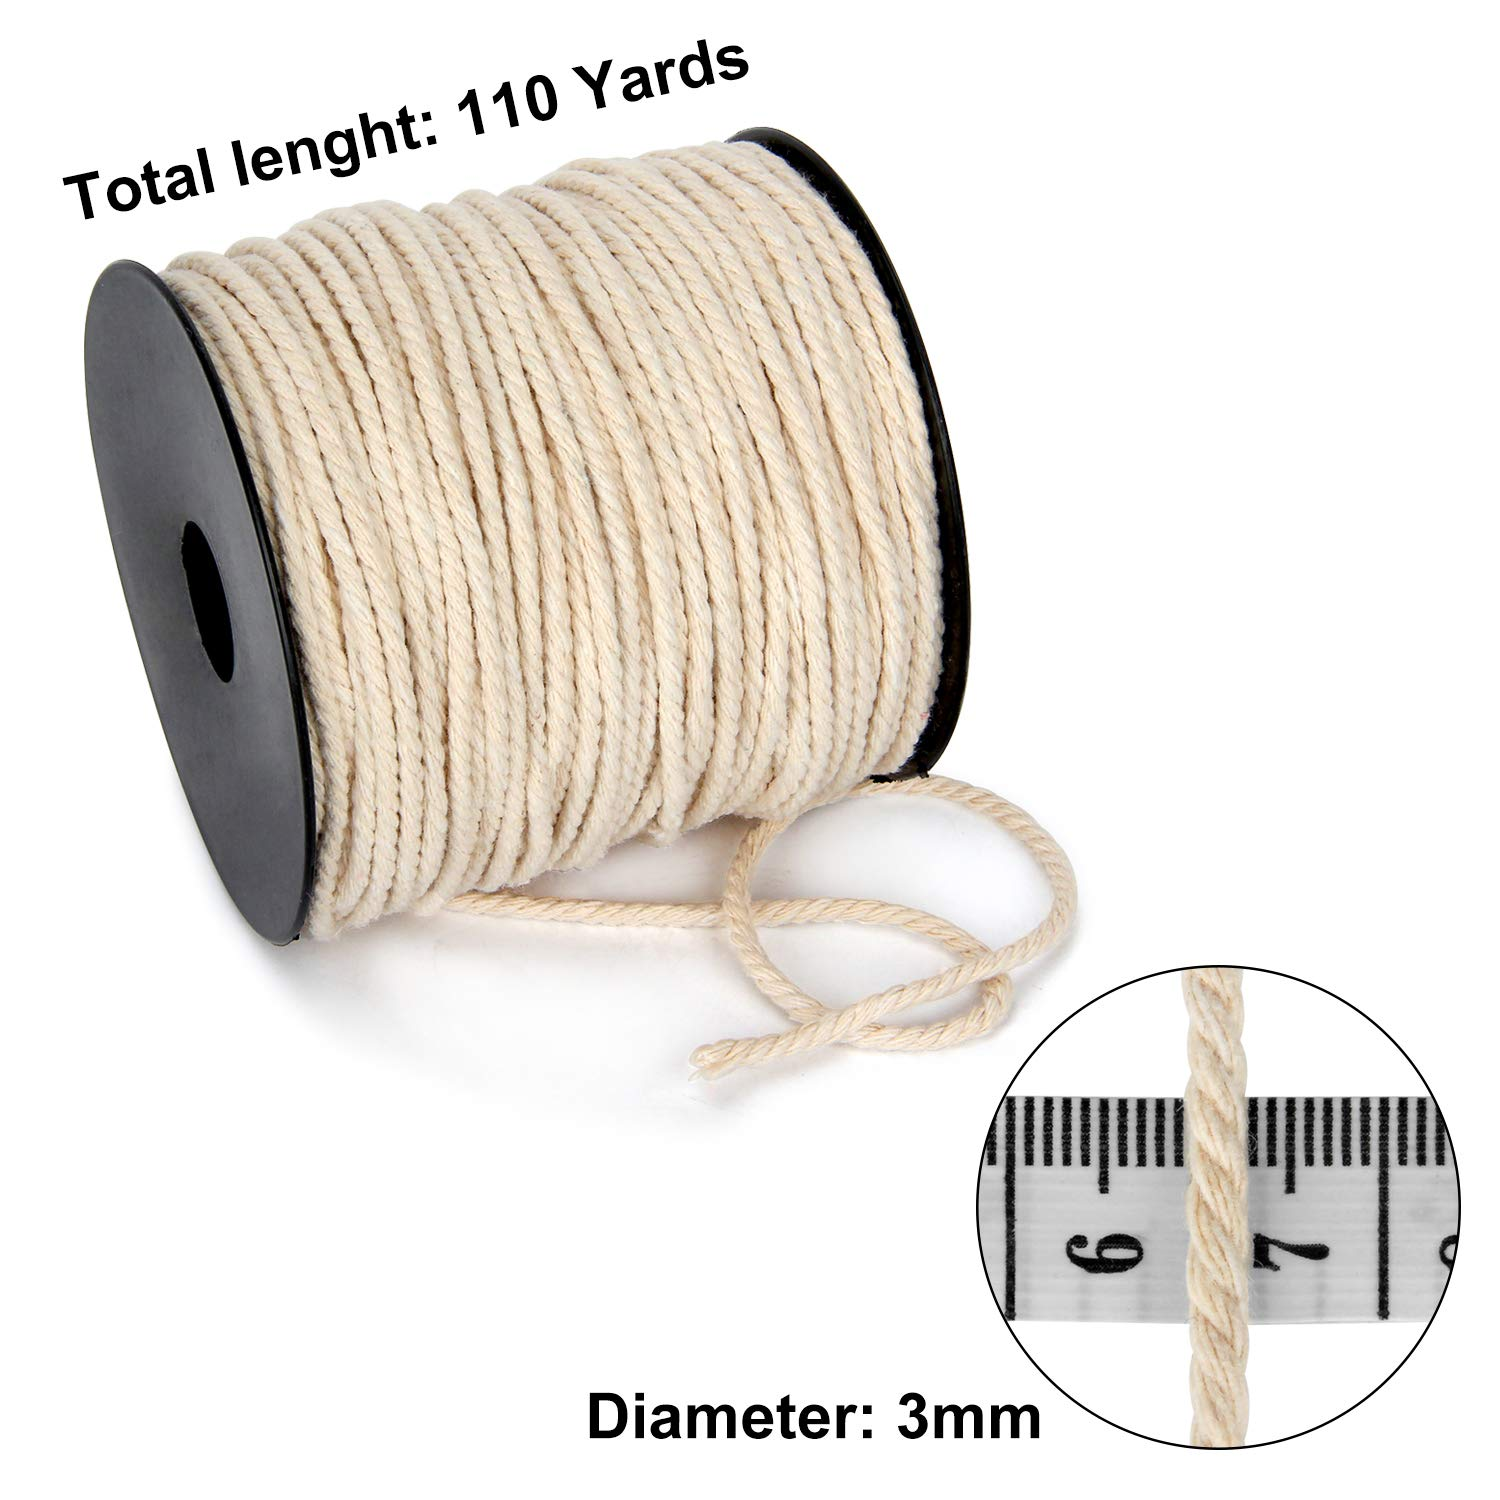 Knitting Crafts Plant Hangers Soft Undyed Cotton Rope for Wall Hangings Decorative Projects Blisstime Macrame Cord 3mm X 110Yards |Natural Cotton Macrame Rope|3 Strand Twisted Cotton Cord